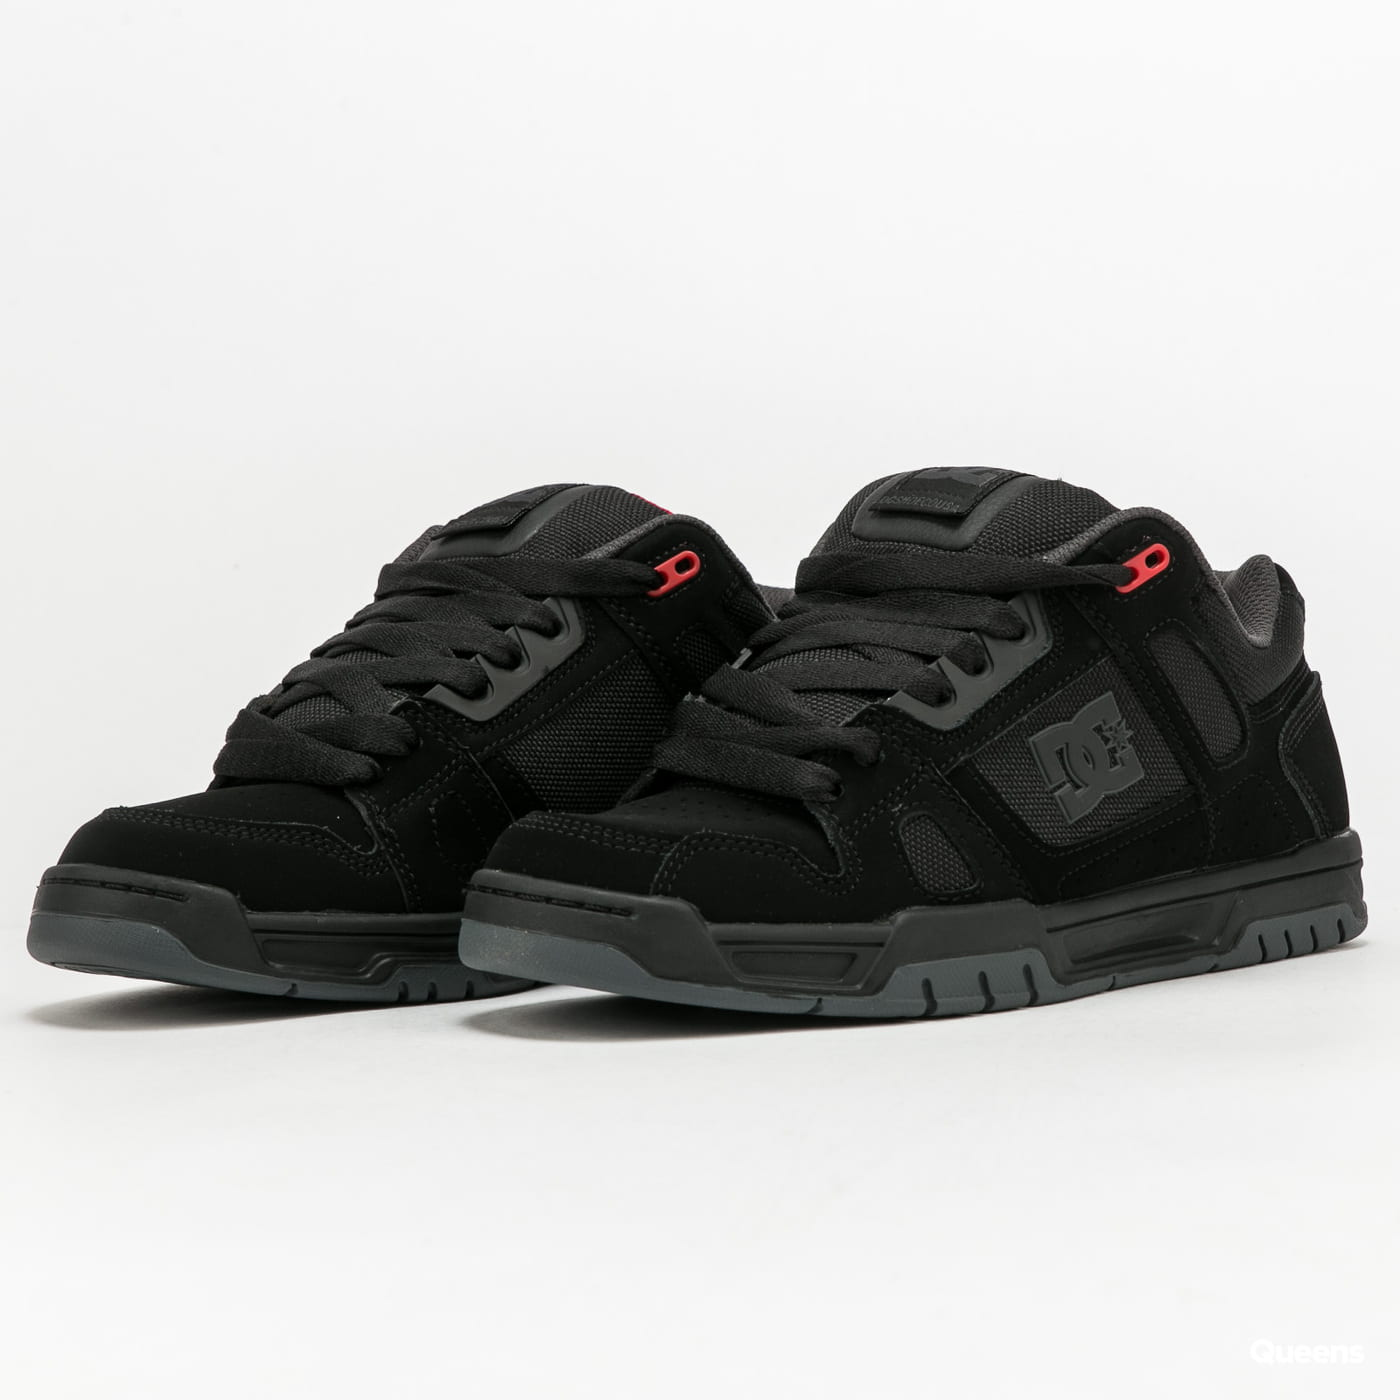 DC Stag black / grey / red